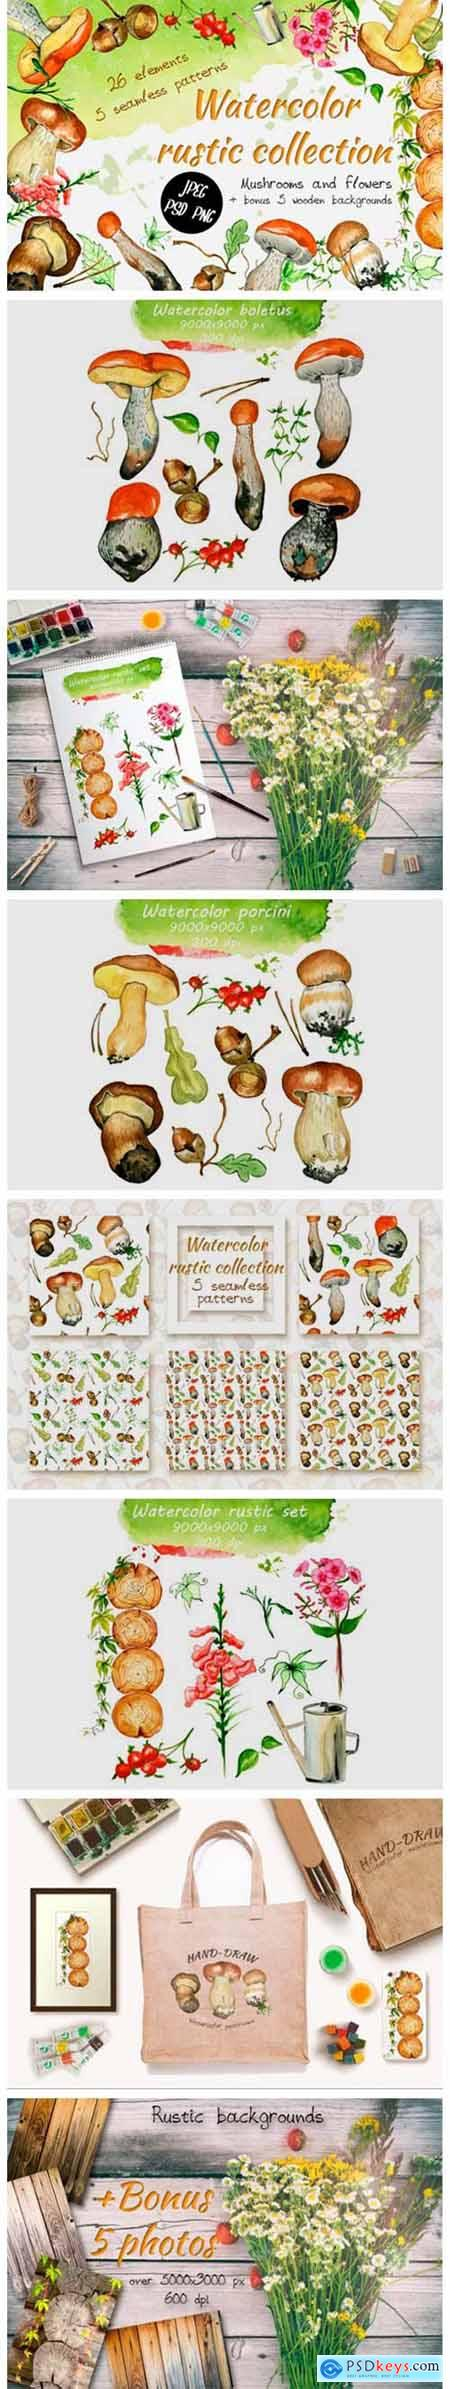 Watercolor Rustic Set with Mushrooms 4954782